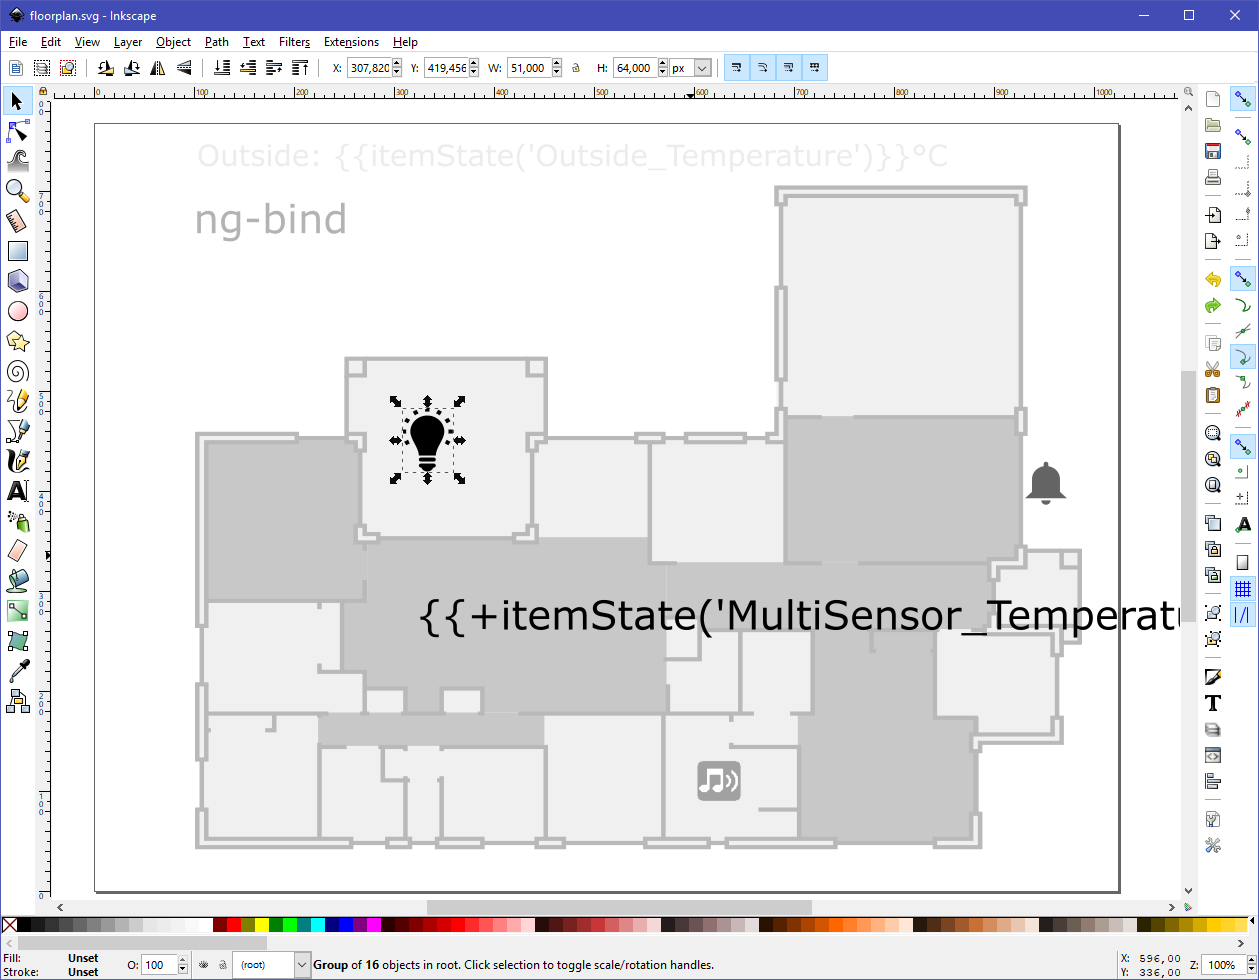 Design your SVG floorplan or dashboard for HABPanel with Inkscape